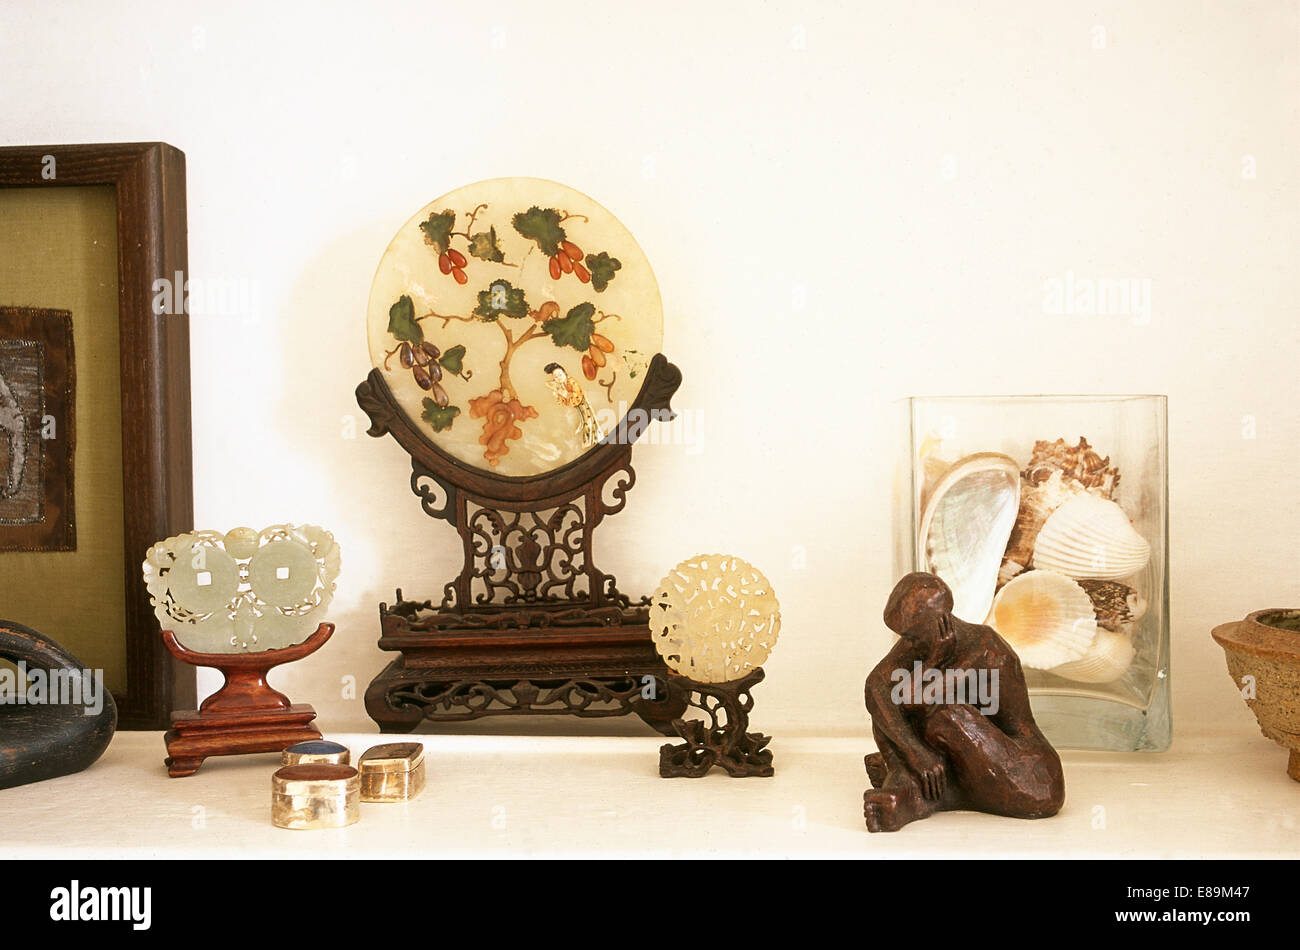 Close-up of an eclectic collection of artefacts - Stock Image